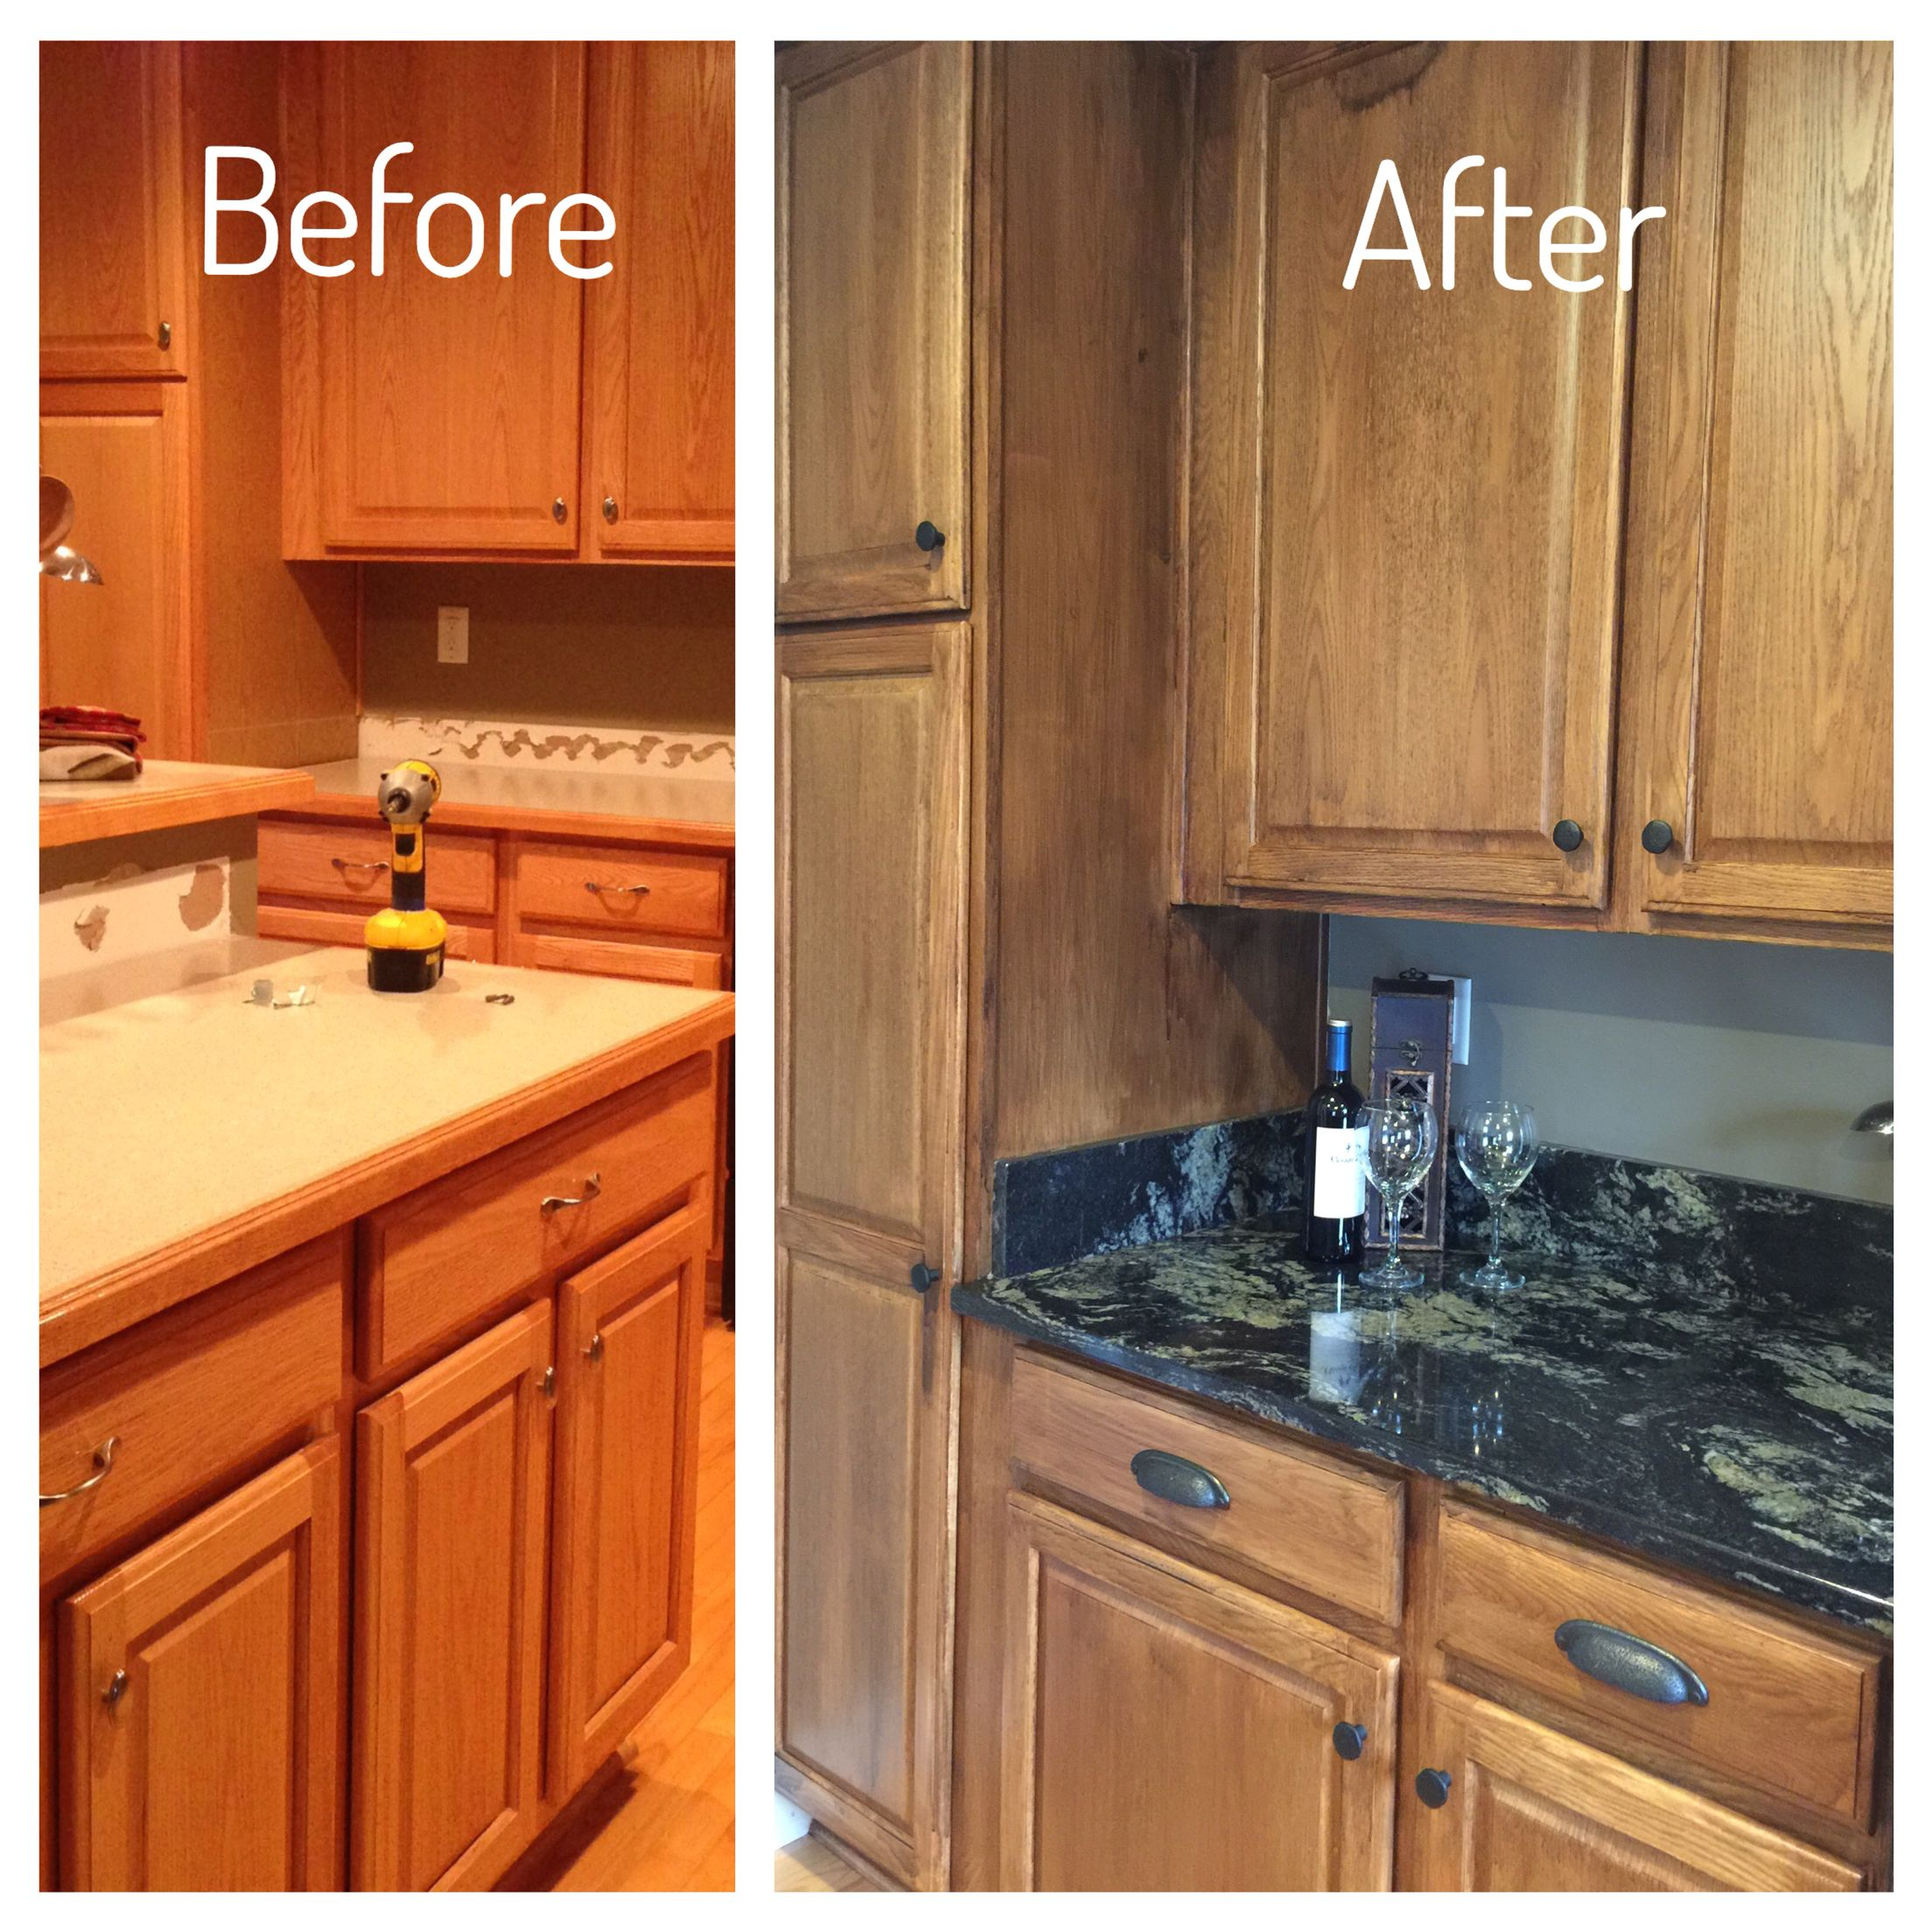 Paint Colors For Kitchens With Golden Oak Cabinets To Do: Kitchen Cabinet Makeover. 2 Coats Of Minwax PolyShade